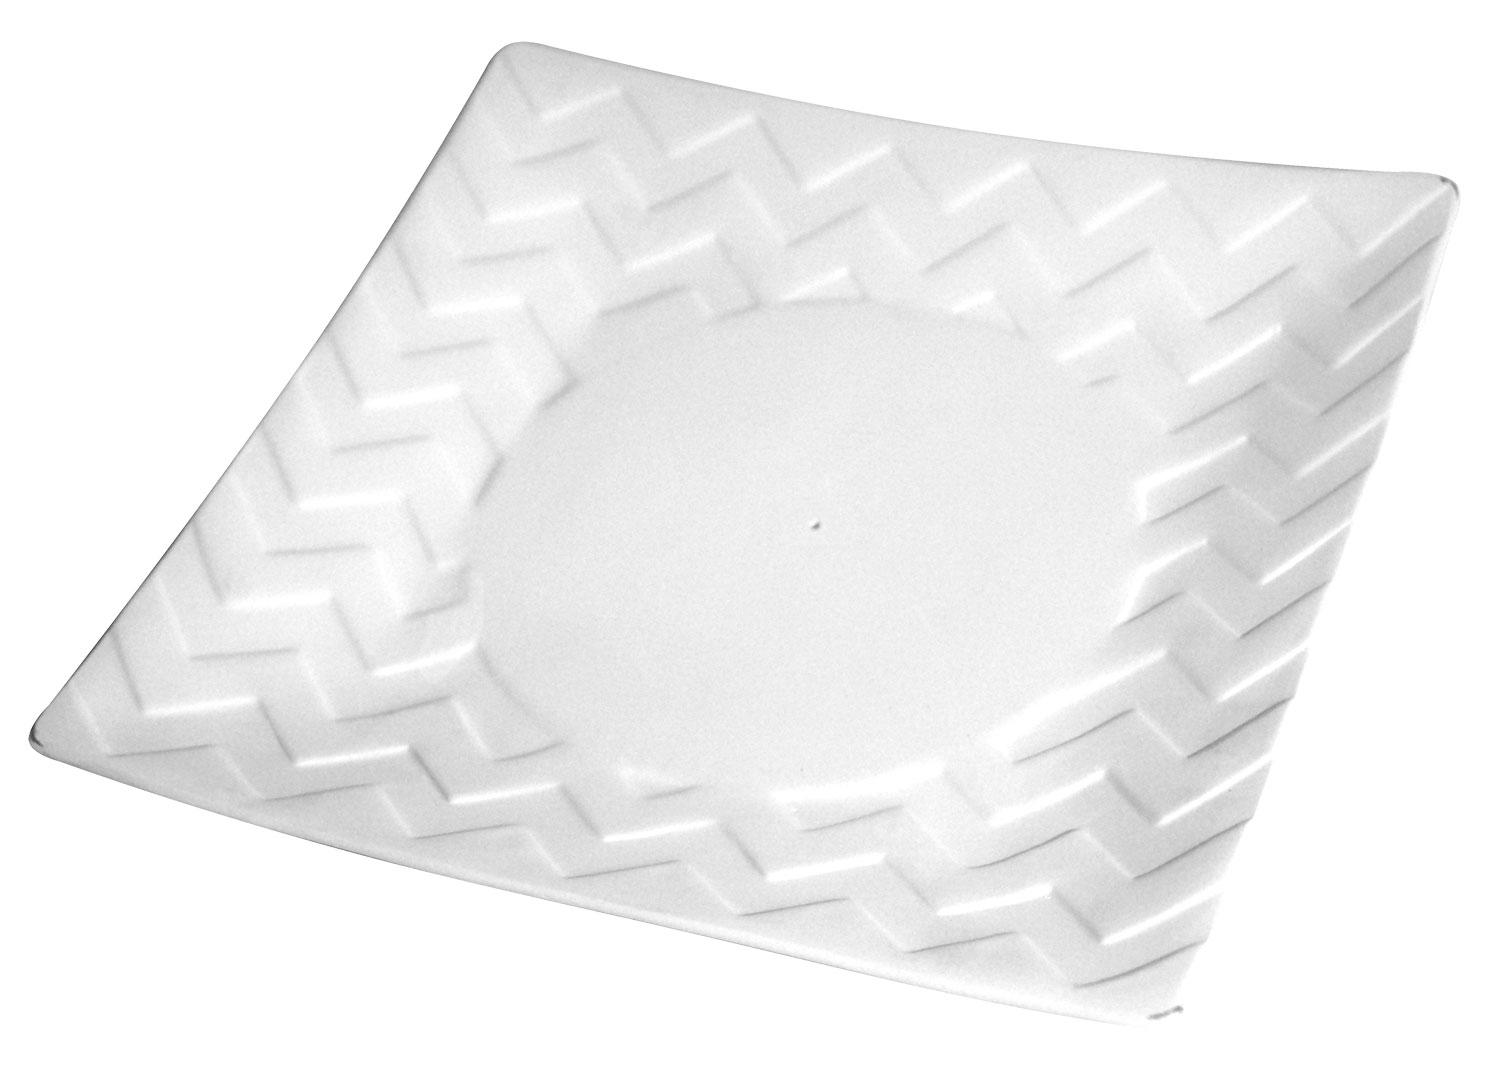 Chevron Charger Plate